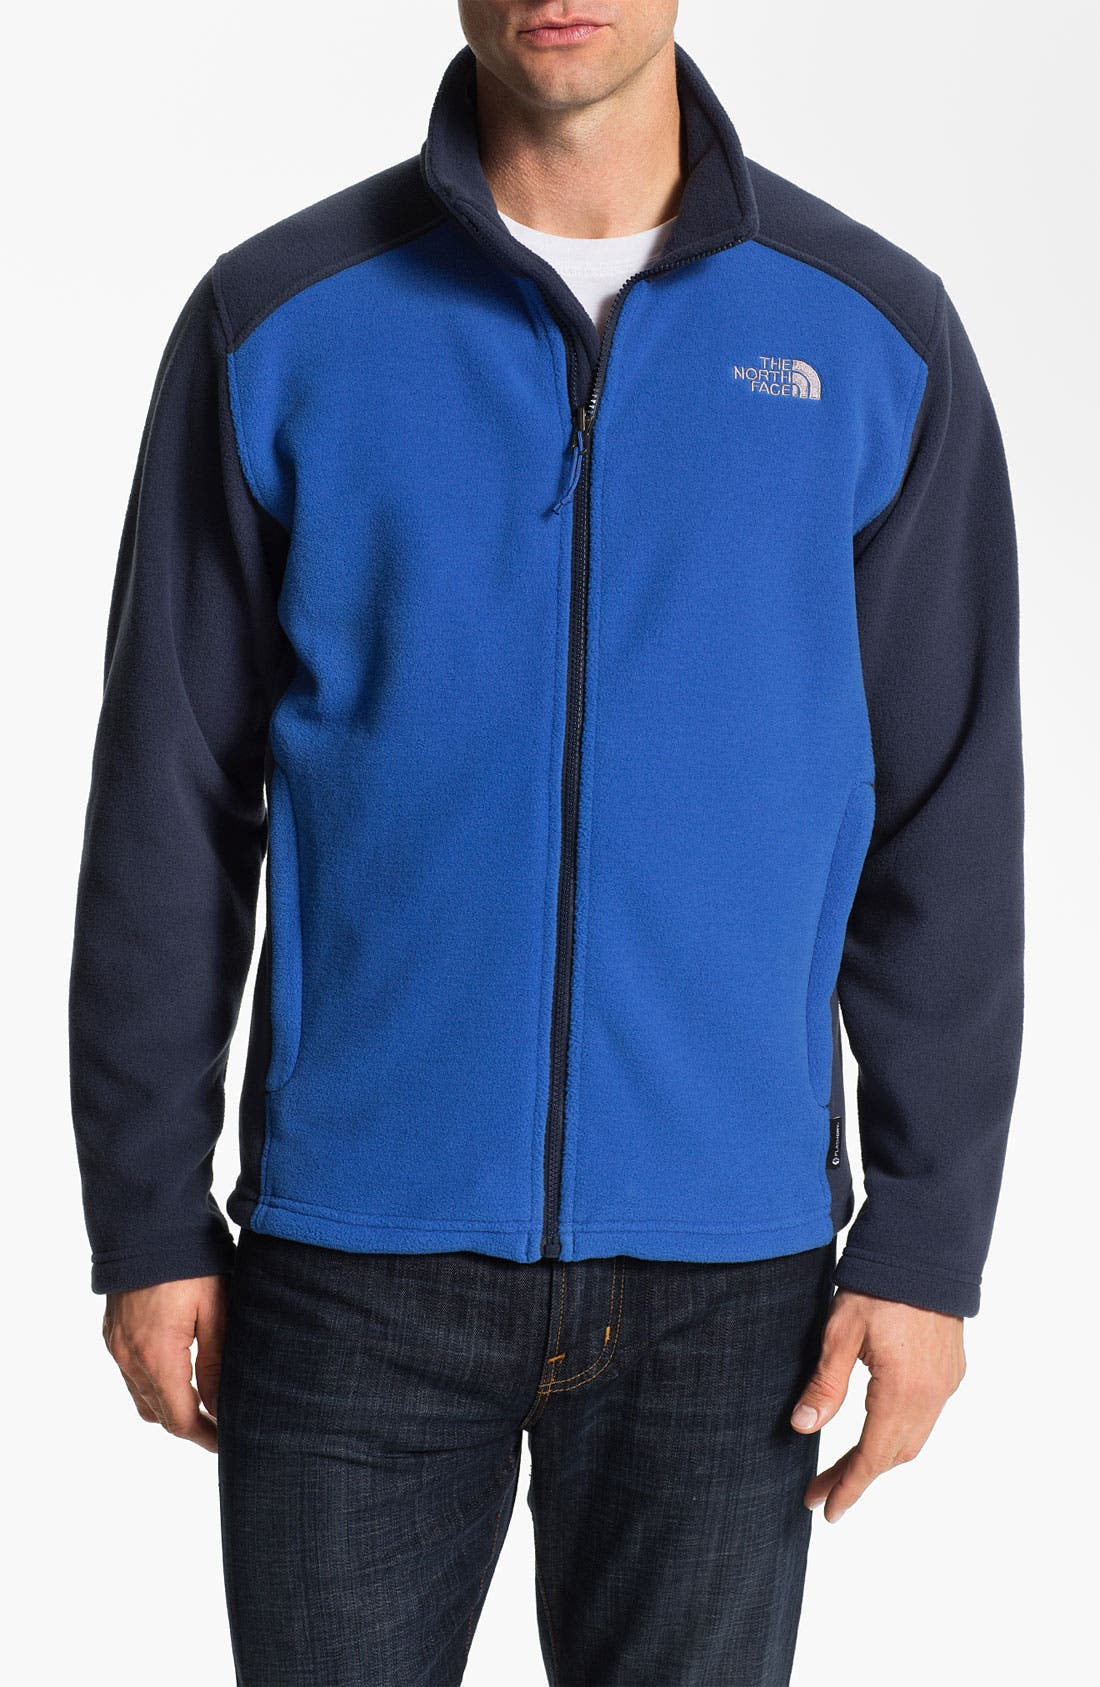 Main Image - The North Face 'RDT 300' Jacket